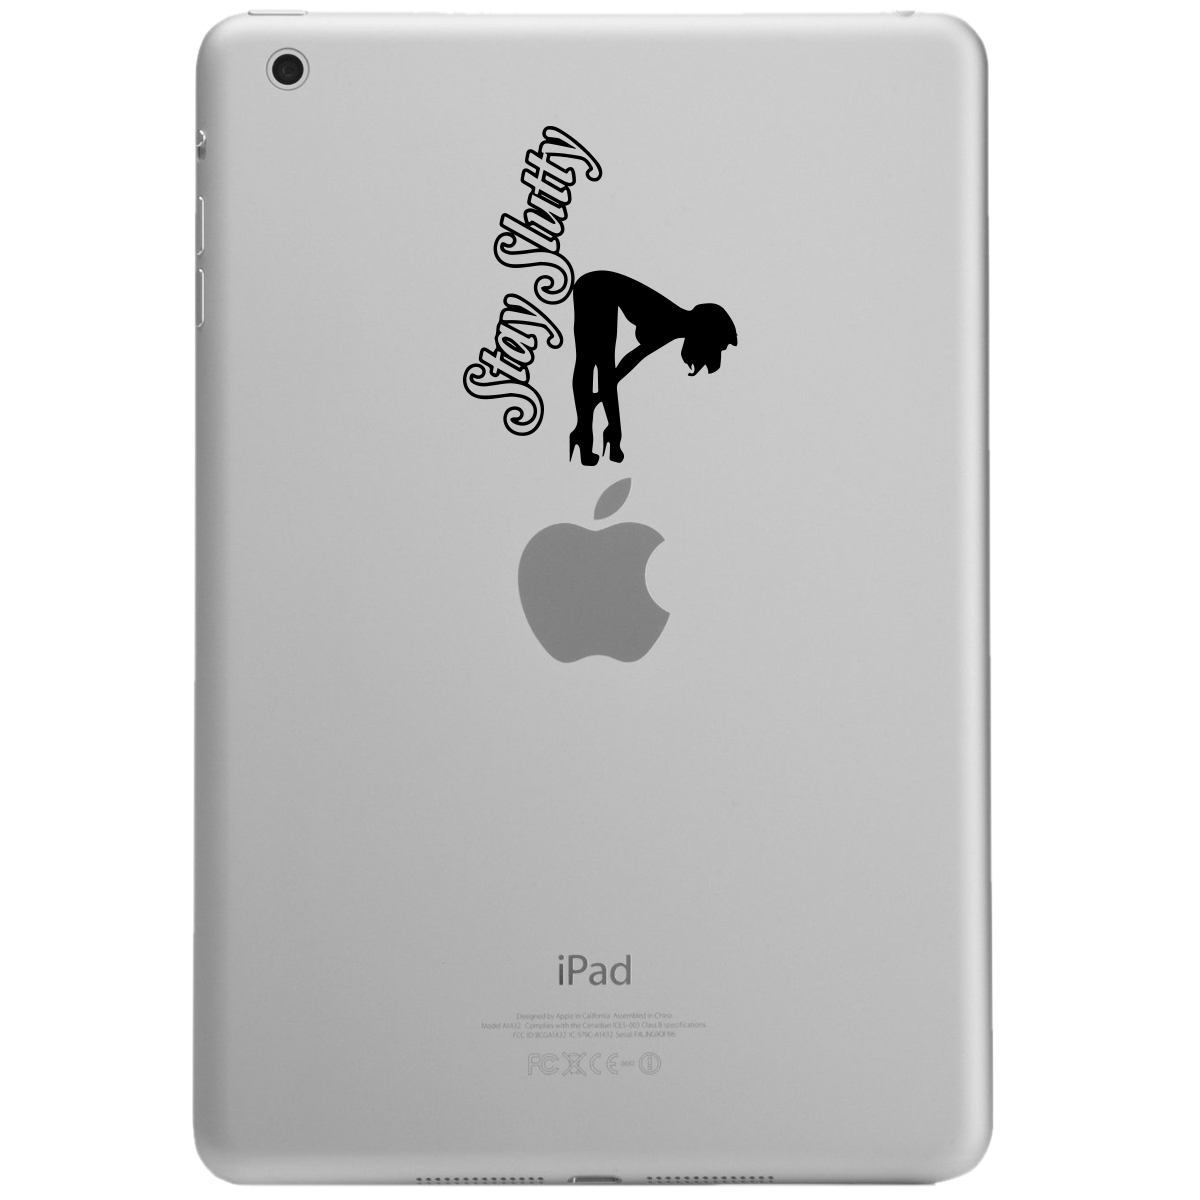 Sexy Stripper Stay Slutty Funny iPad Tablet Vinyl Sticker Decal